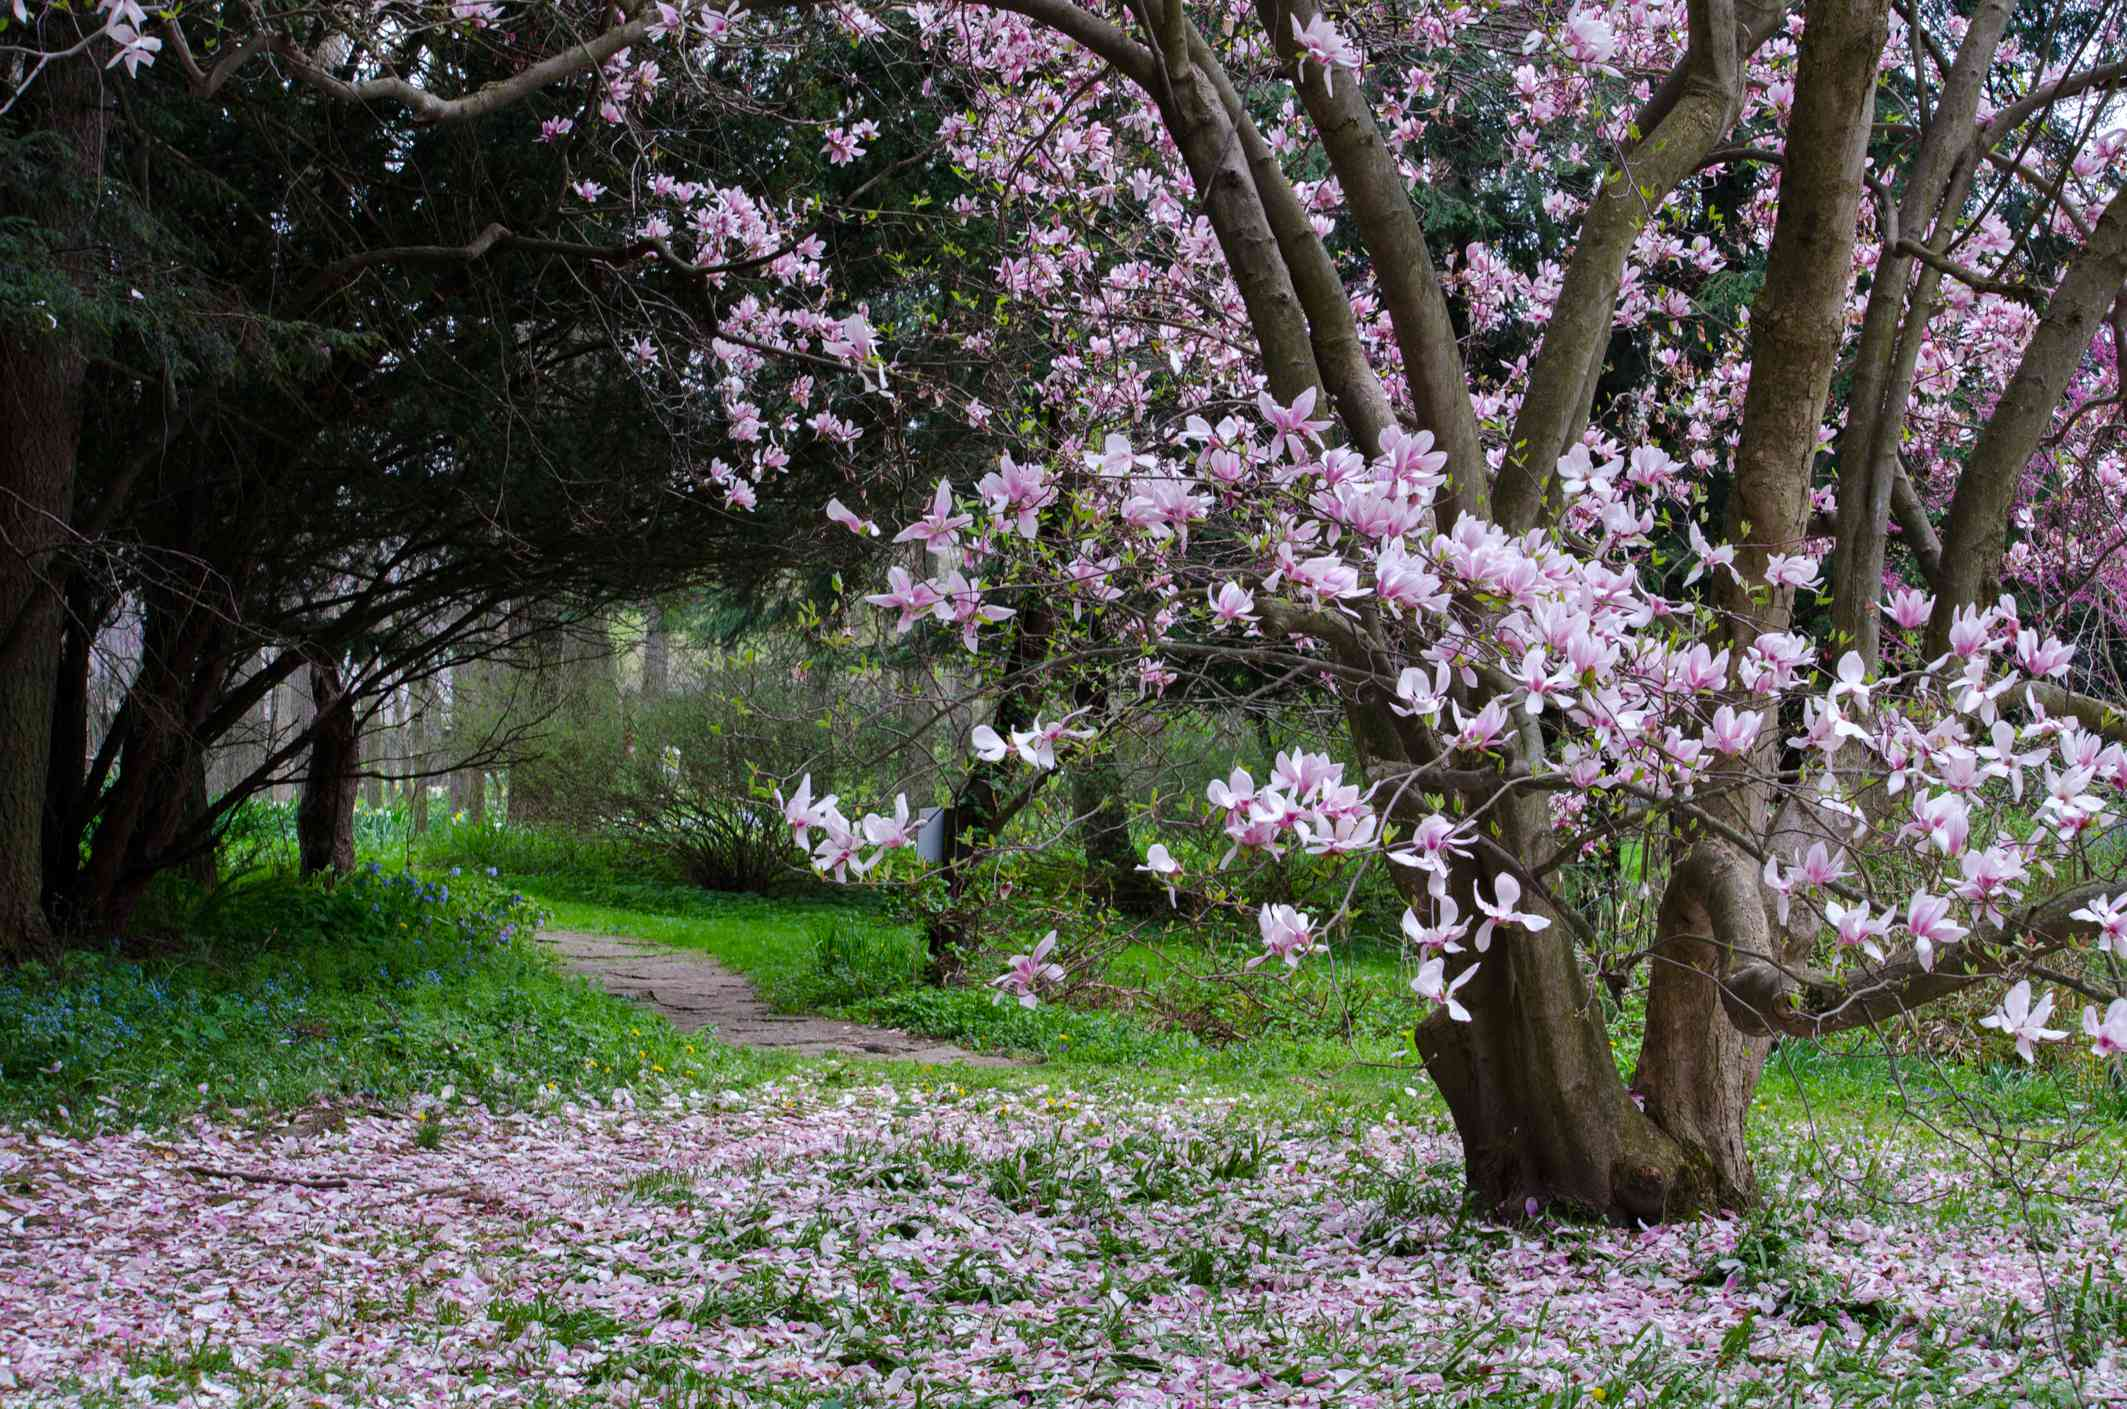 Pink saucer magnolia mature tree with blossoms falling on the ground.